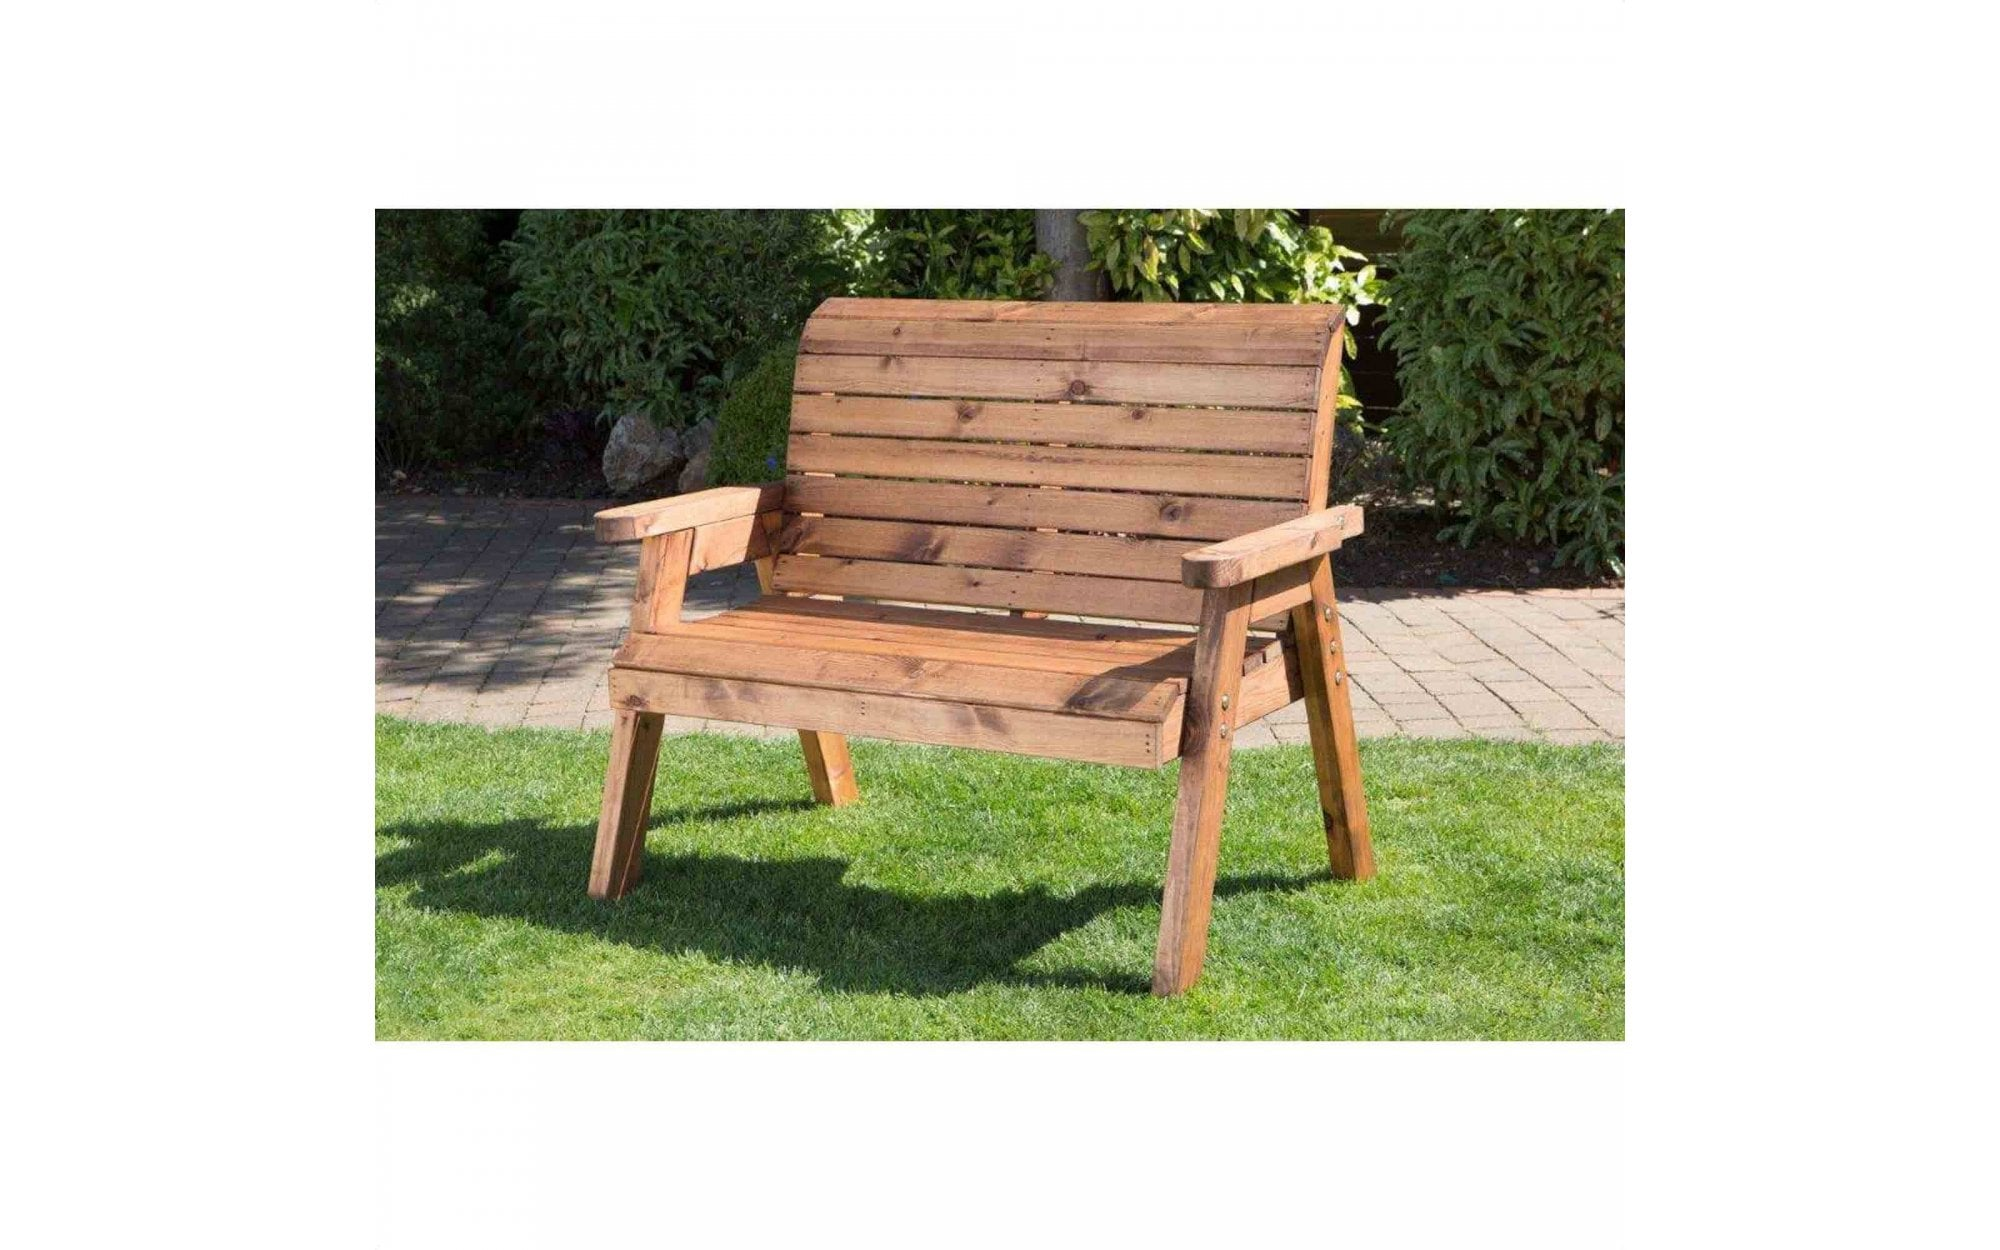 CHARLES TAYLOR GARDEN FURNITURE Charles Taylor 9 Seater Bench